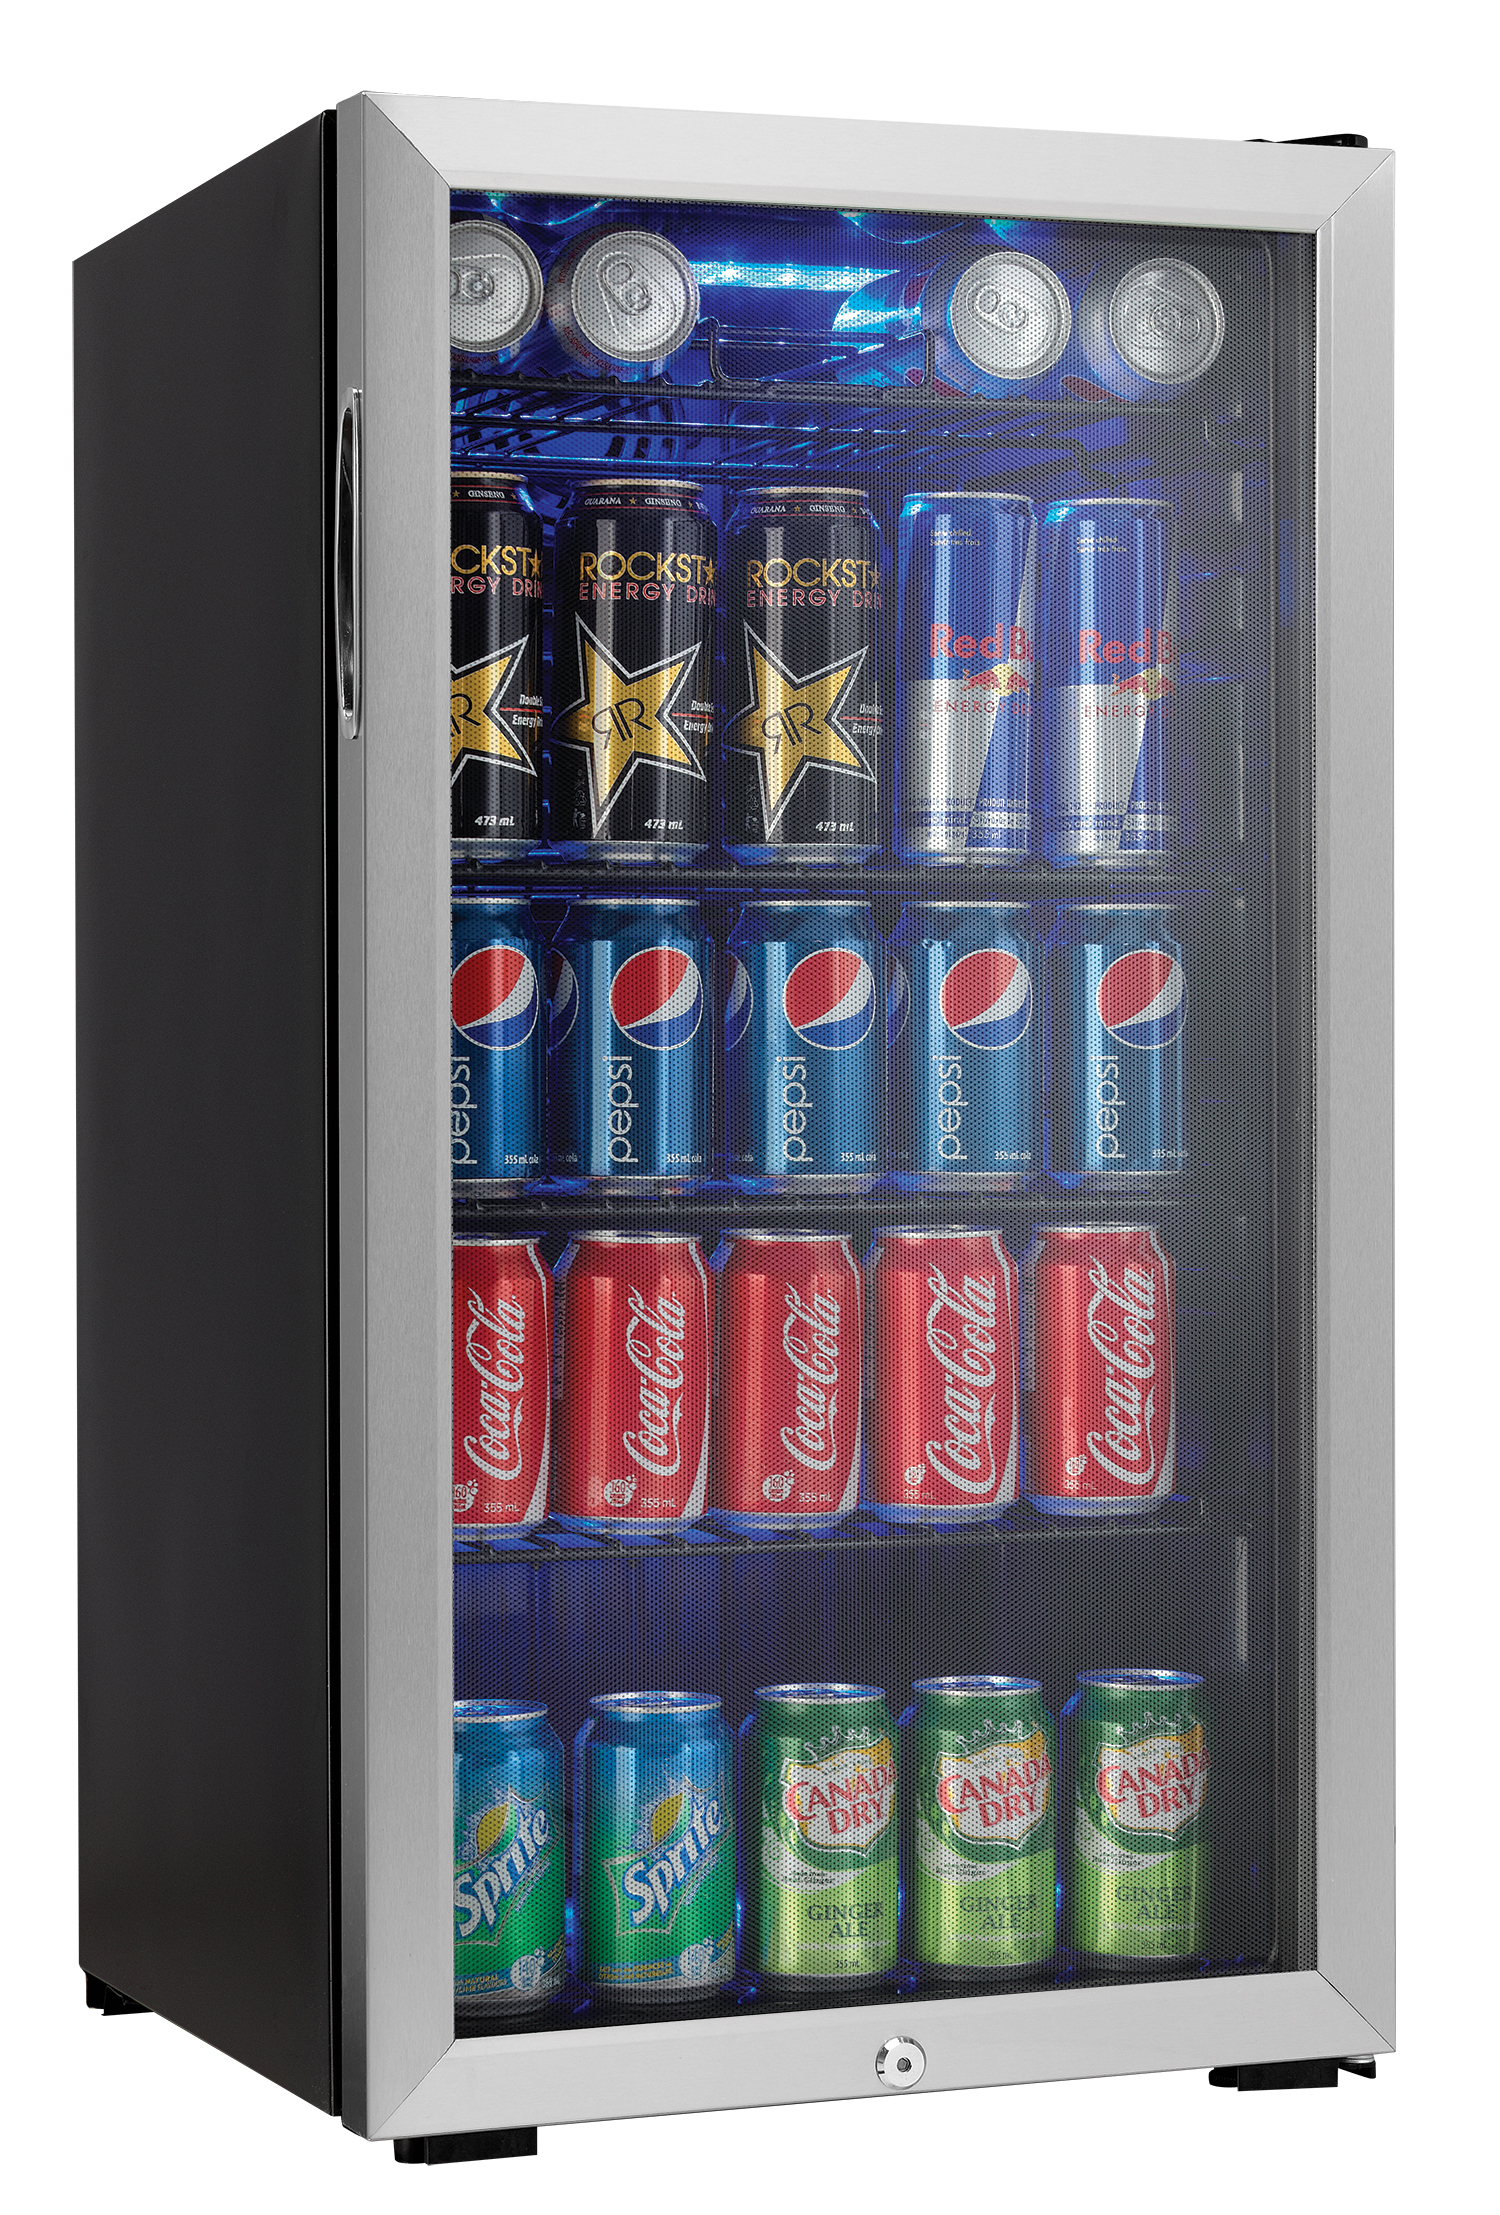 Dbc120bls Danby 120 355ml Can Capacity Beverage Center